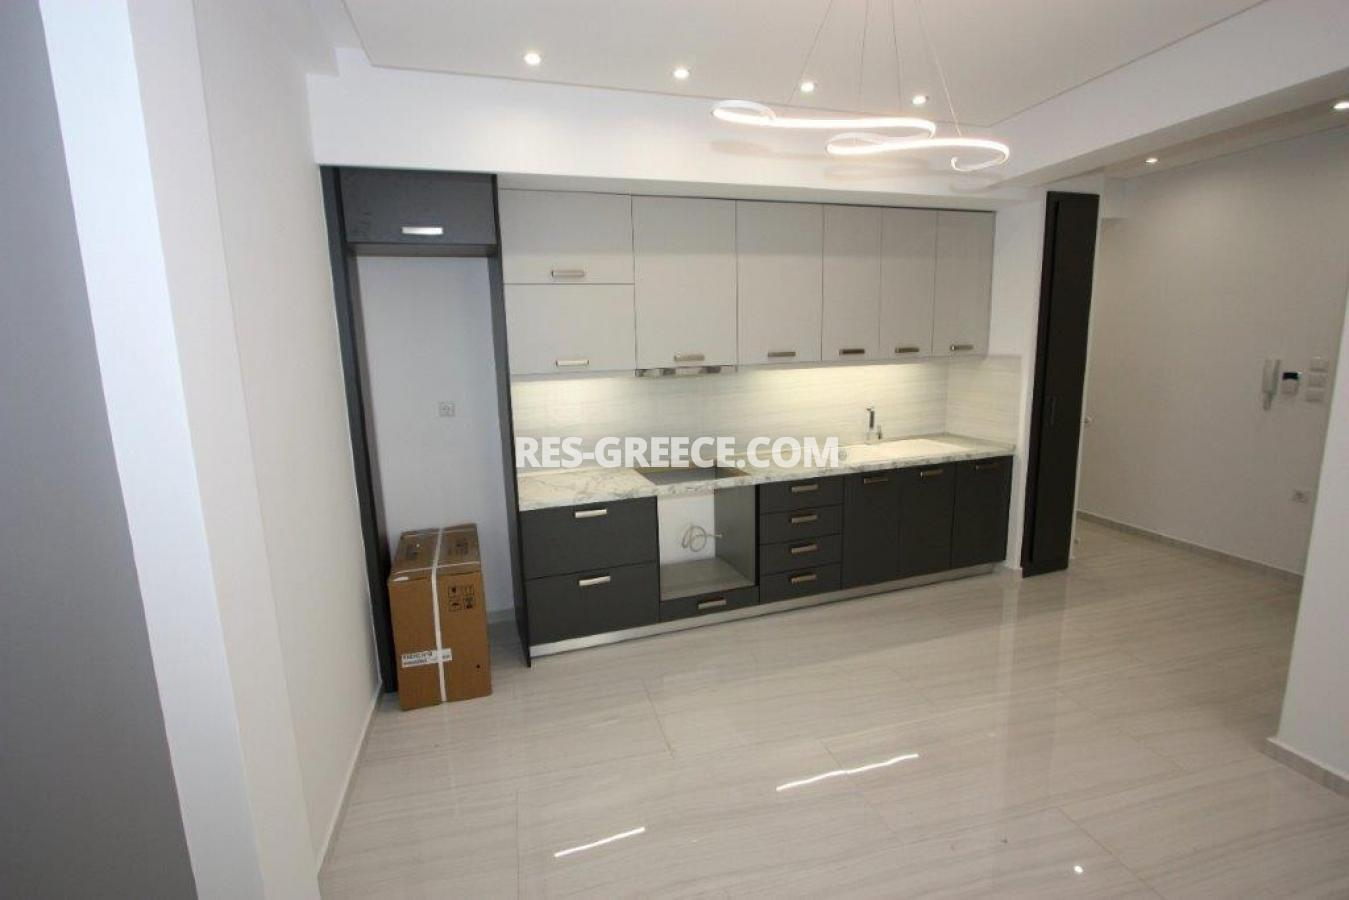 Poli 21, Central Macedonia, Greece - Apartment for residence or for long term rent - Photo 1